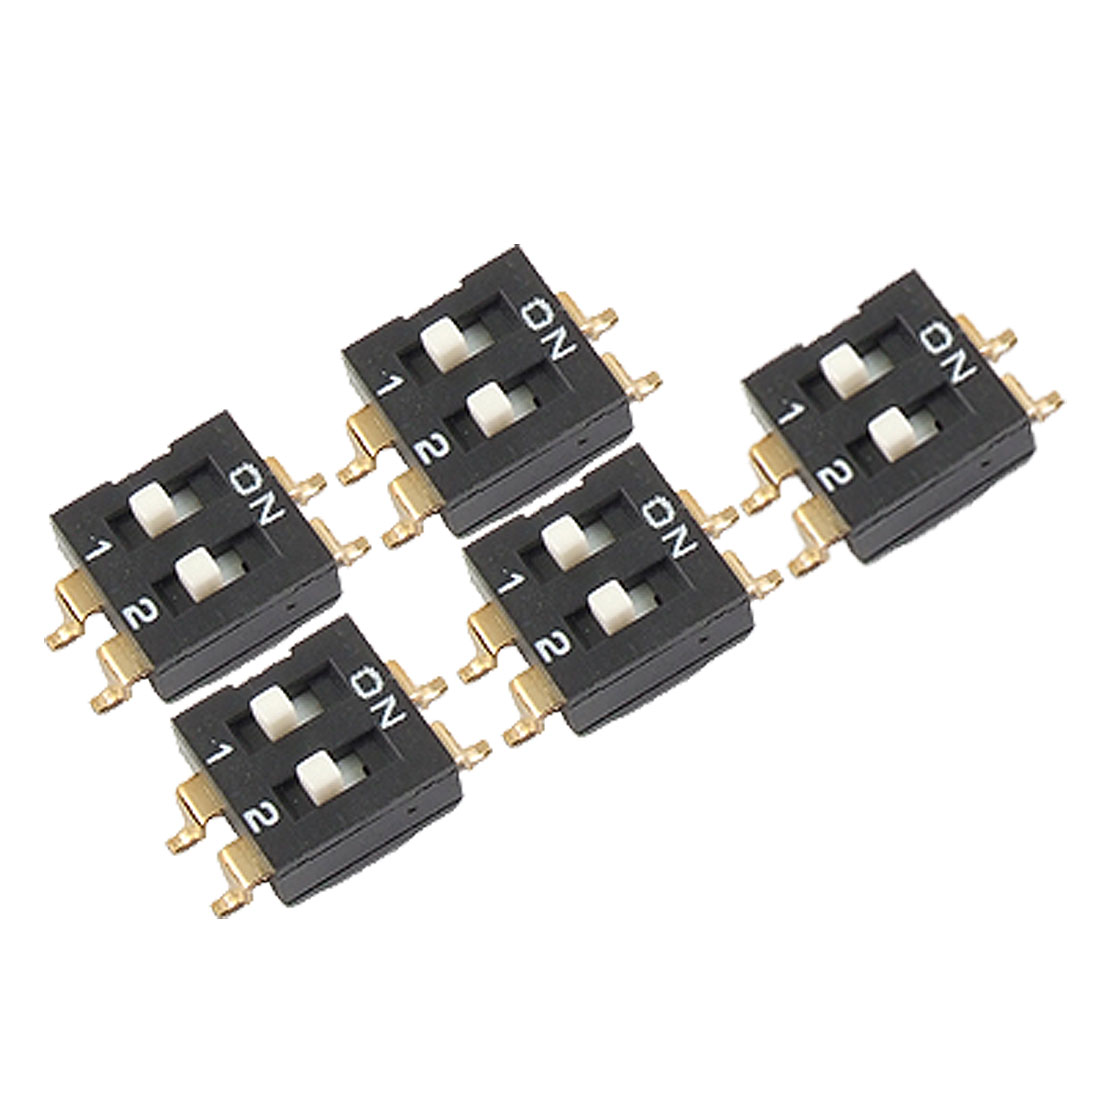 "0.1"" Pin Spacing 2 Position SMD SMT Type DIP Switch 5 Pcs"